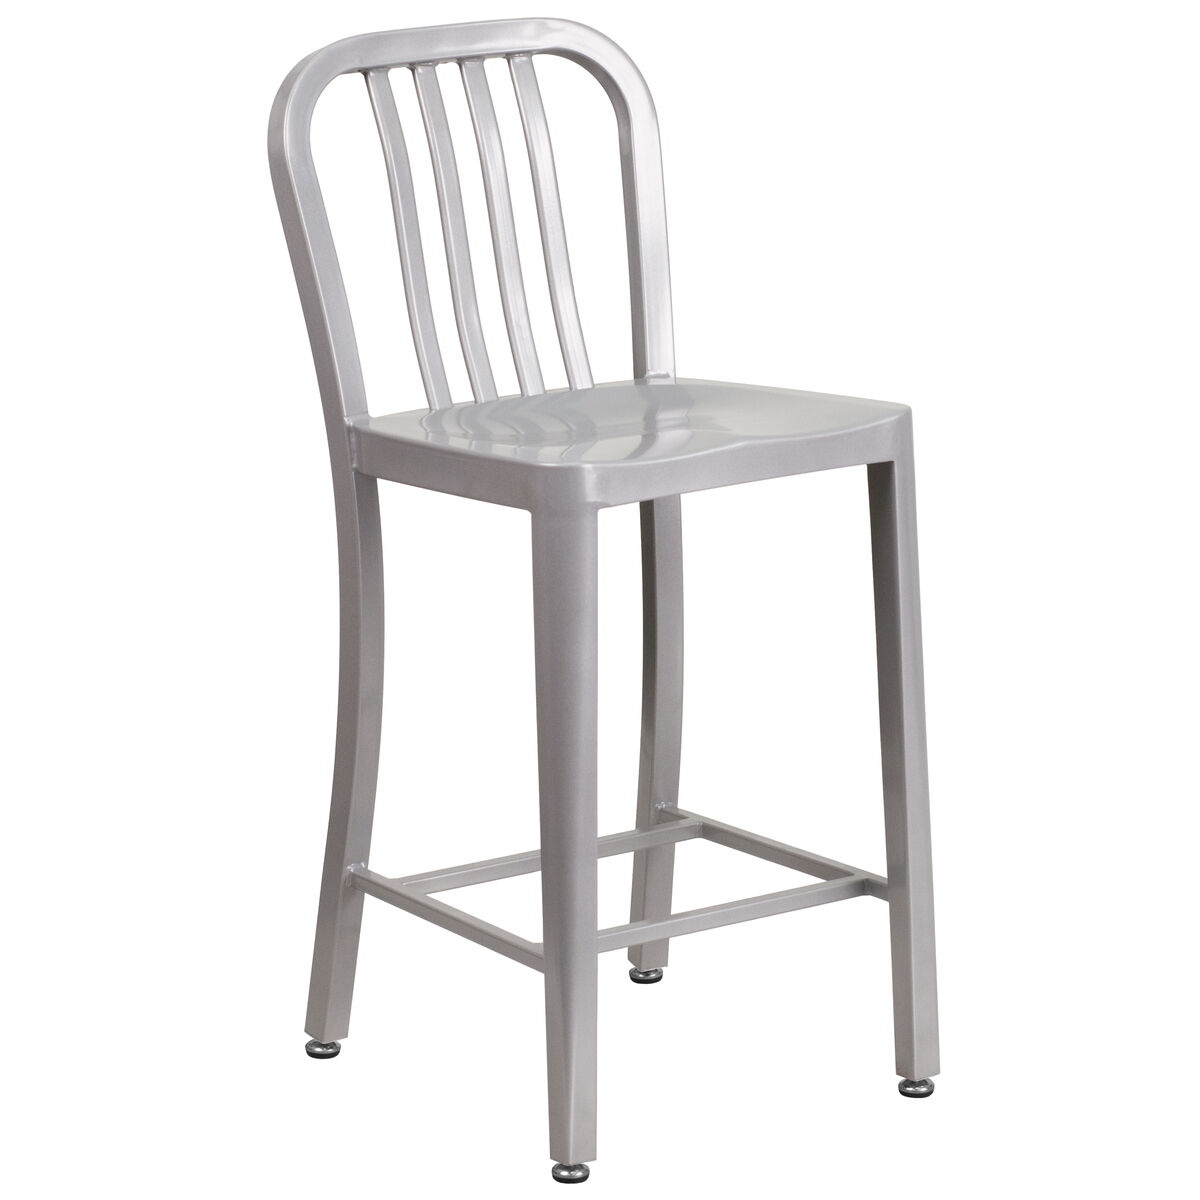 Our 24 high silver metal indoor outdoor counter height stool with vertical slat